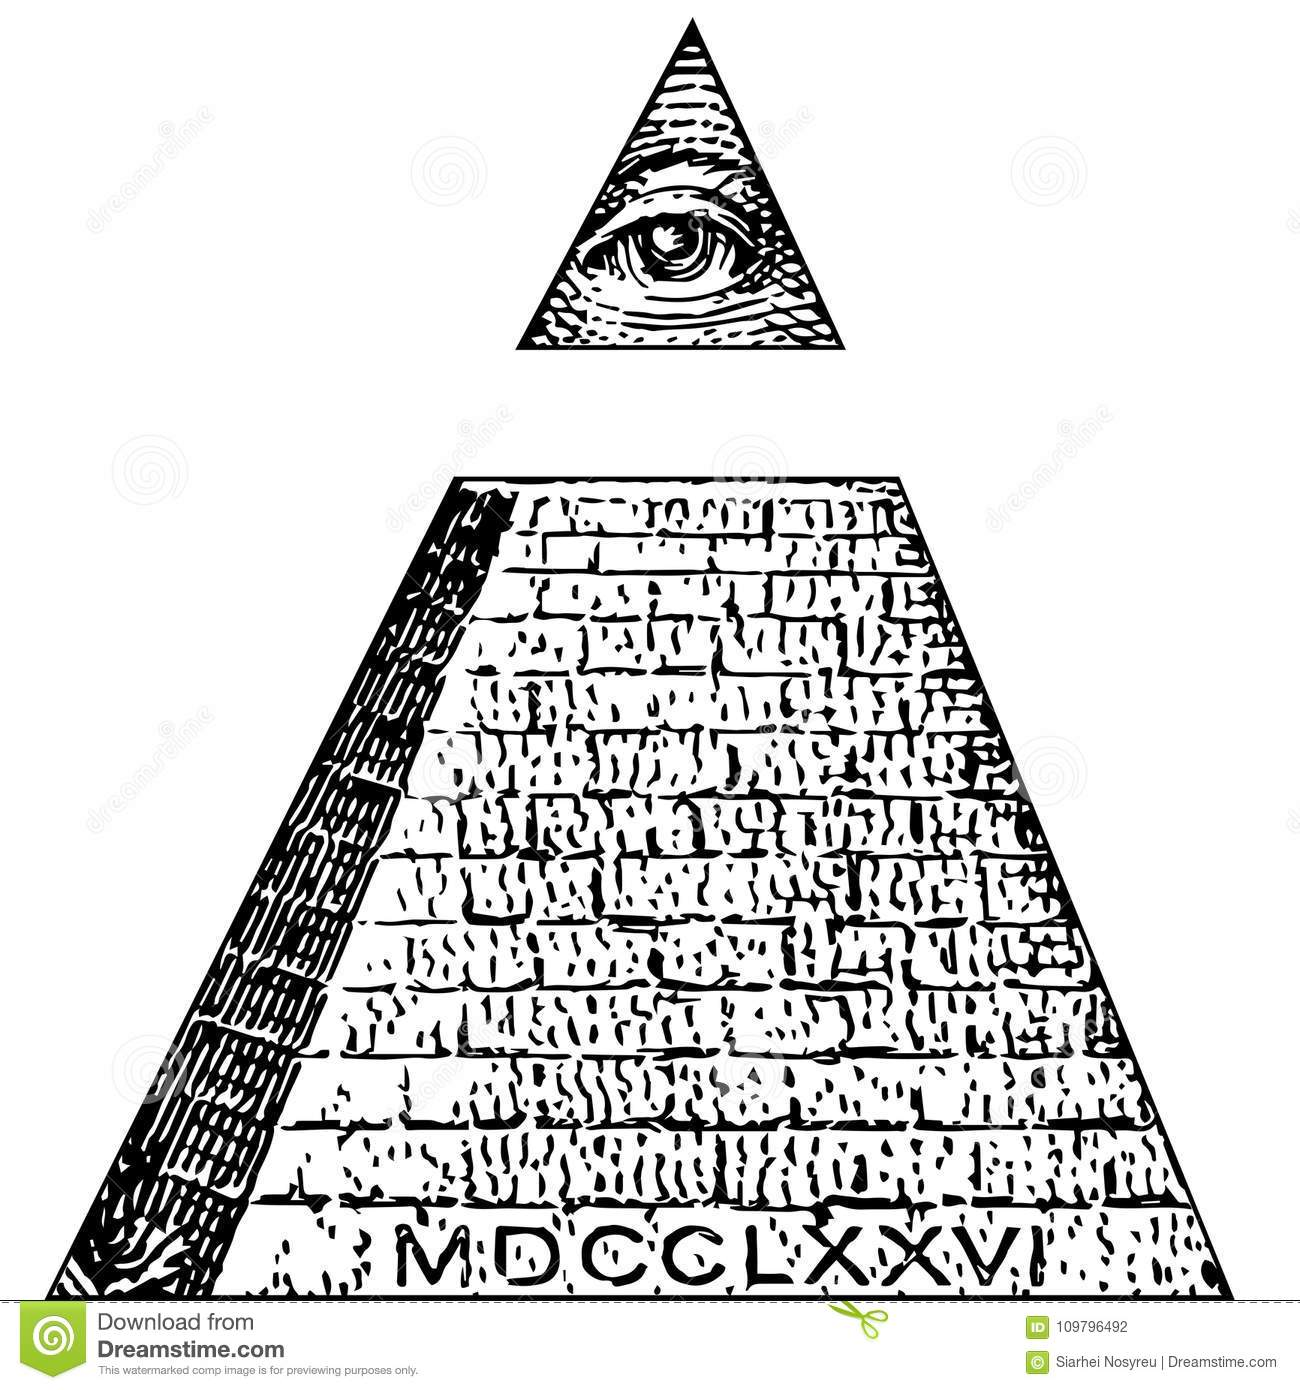 illuminati-symbols-bill-masonic-sign-all-seeing-eye-vector-one-dollar-pyramid-new-world-order-illuminati-symbols-bill-masonic-sign-109796492.jpg